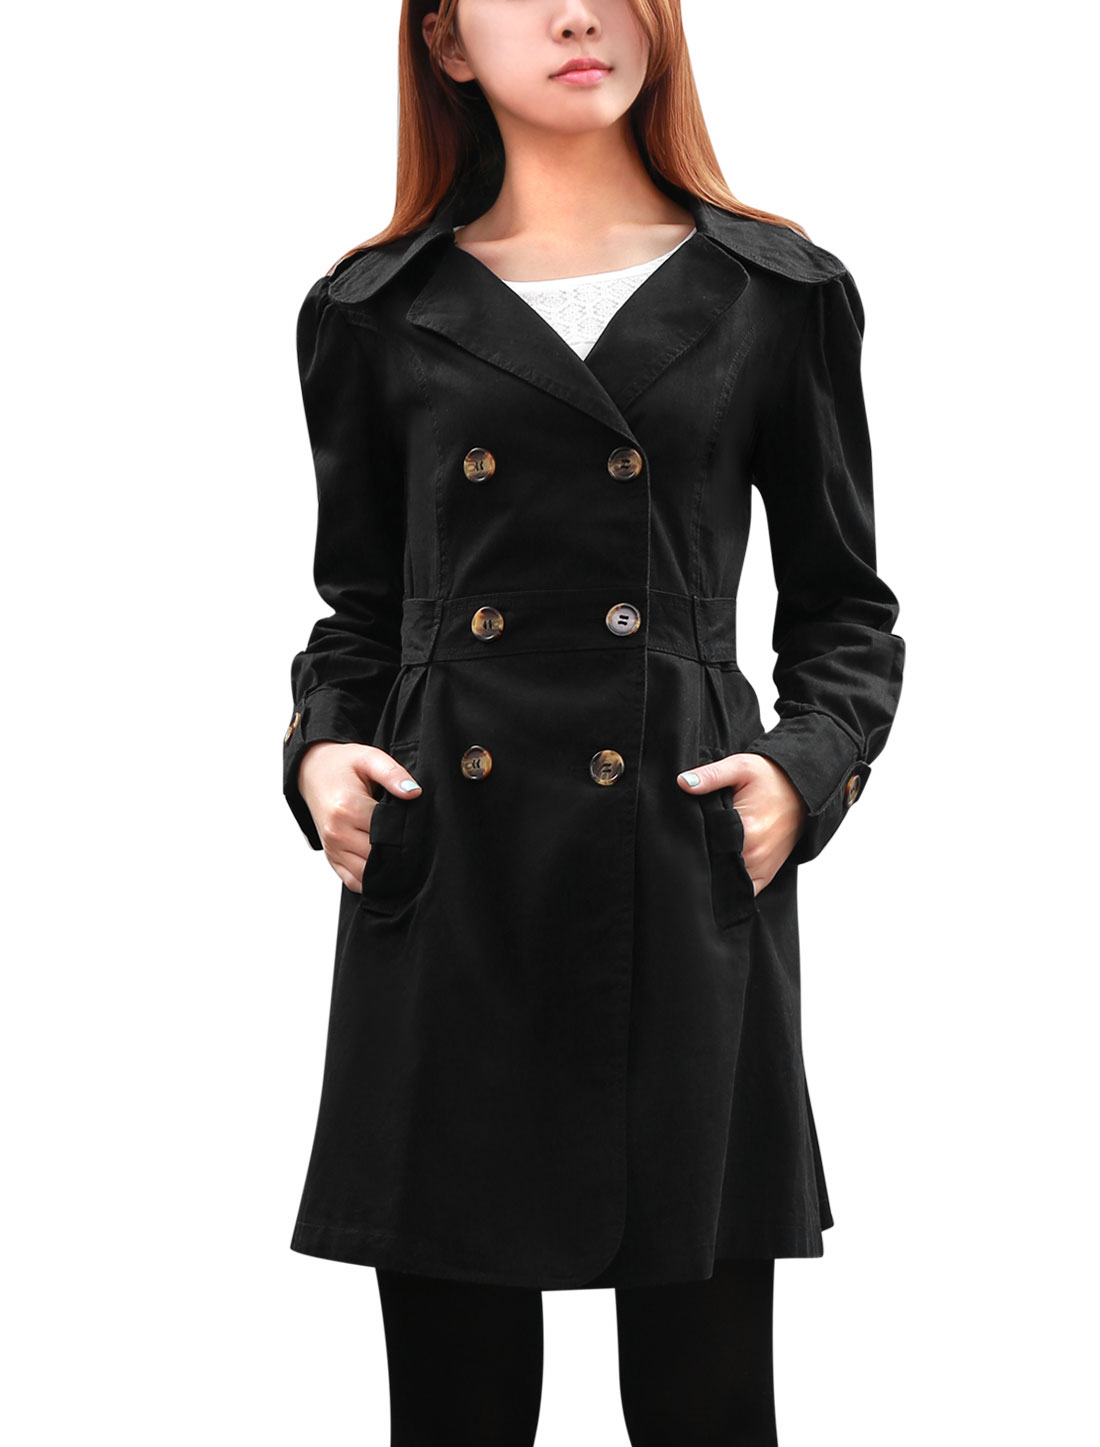 Women Self Tie Strap Notched Lapel Cool Trench Jacket Black M